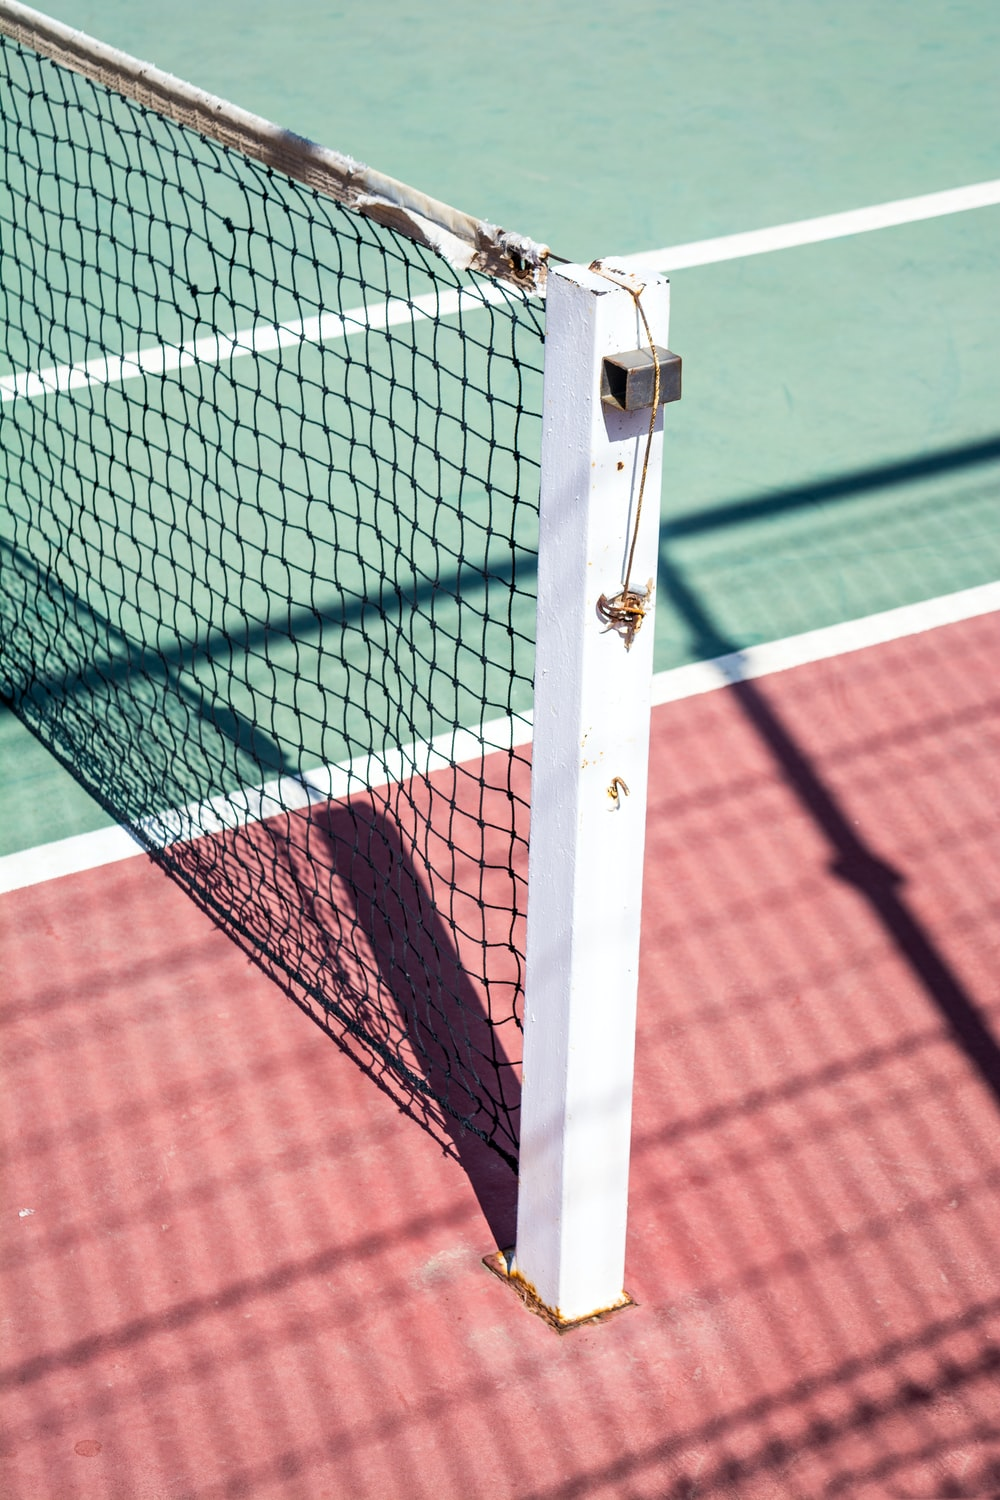 A focused shot of a post on one side of a tennis net.